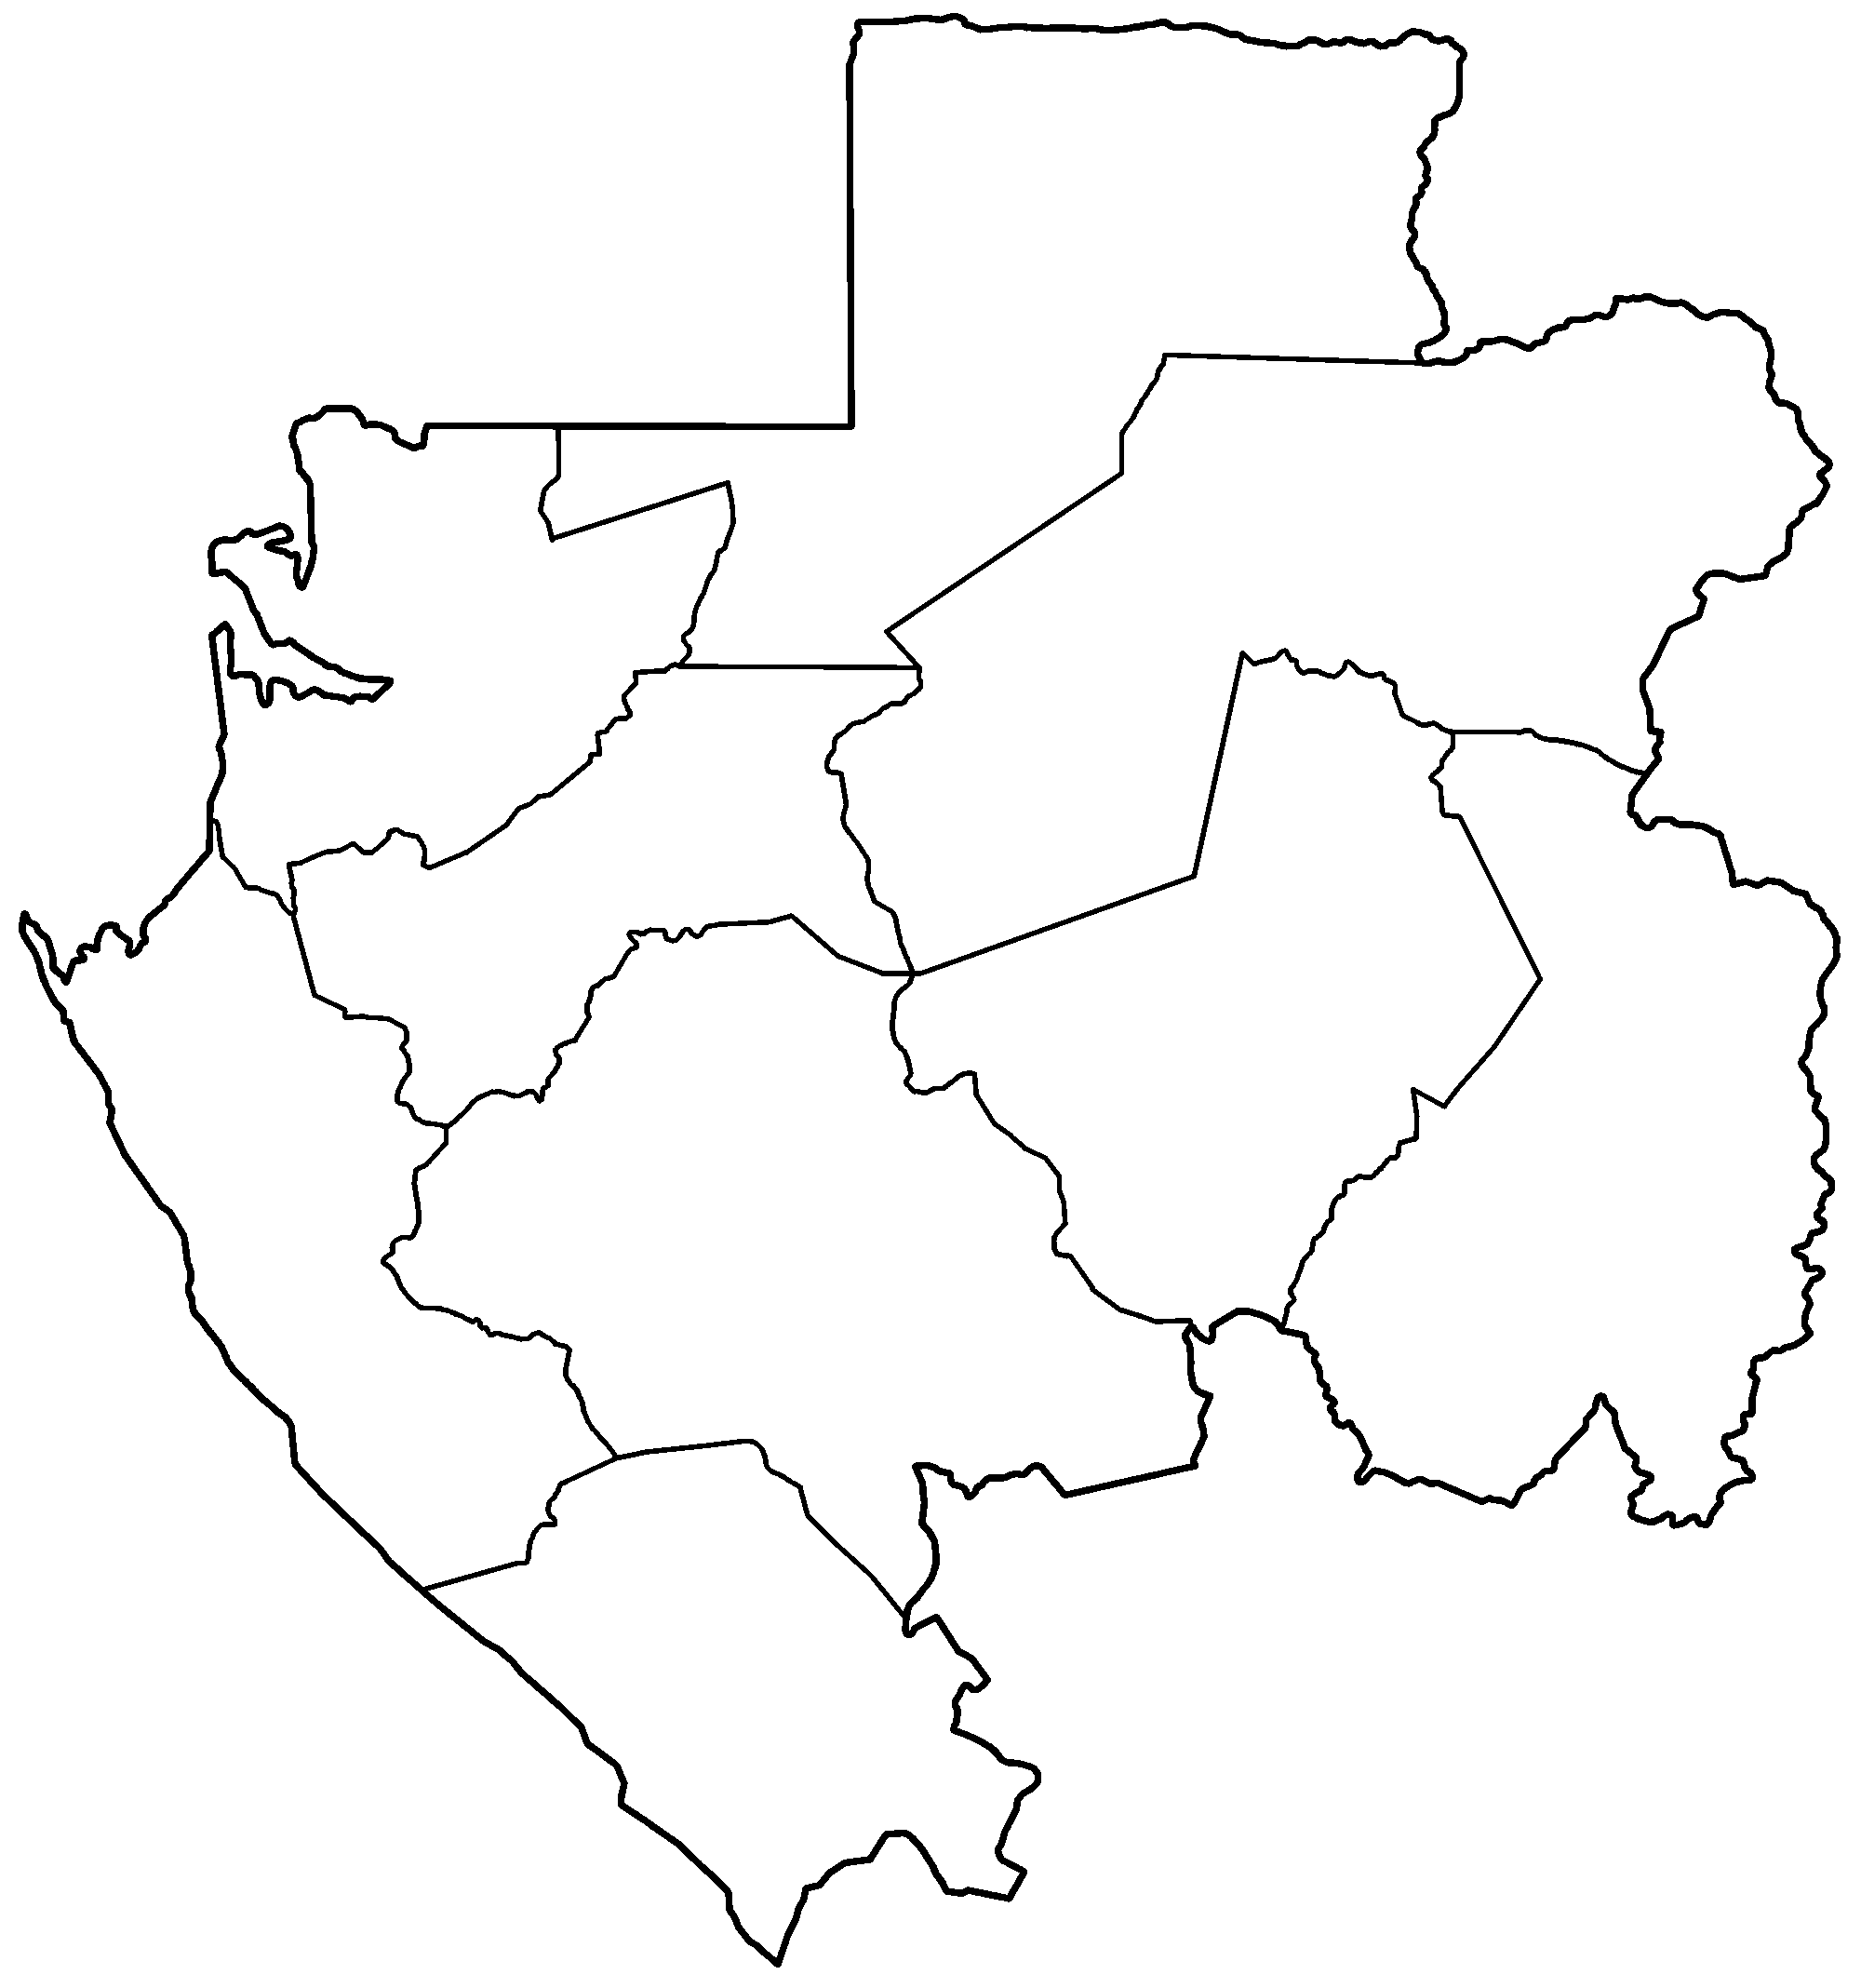 FileGabon Provinces Blankpng Wikimedia Commons - Gabon blank map